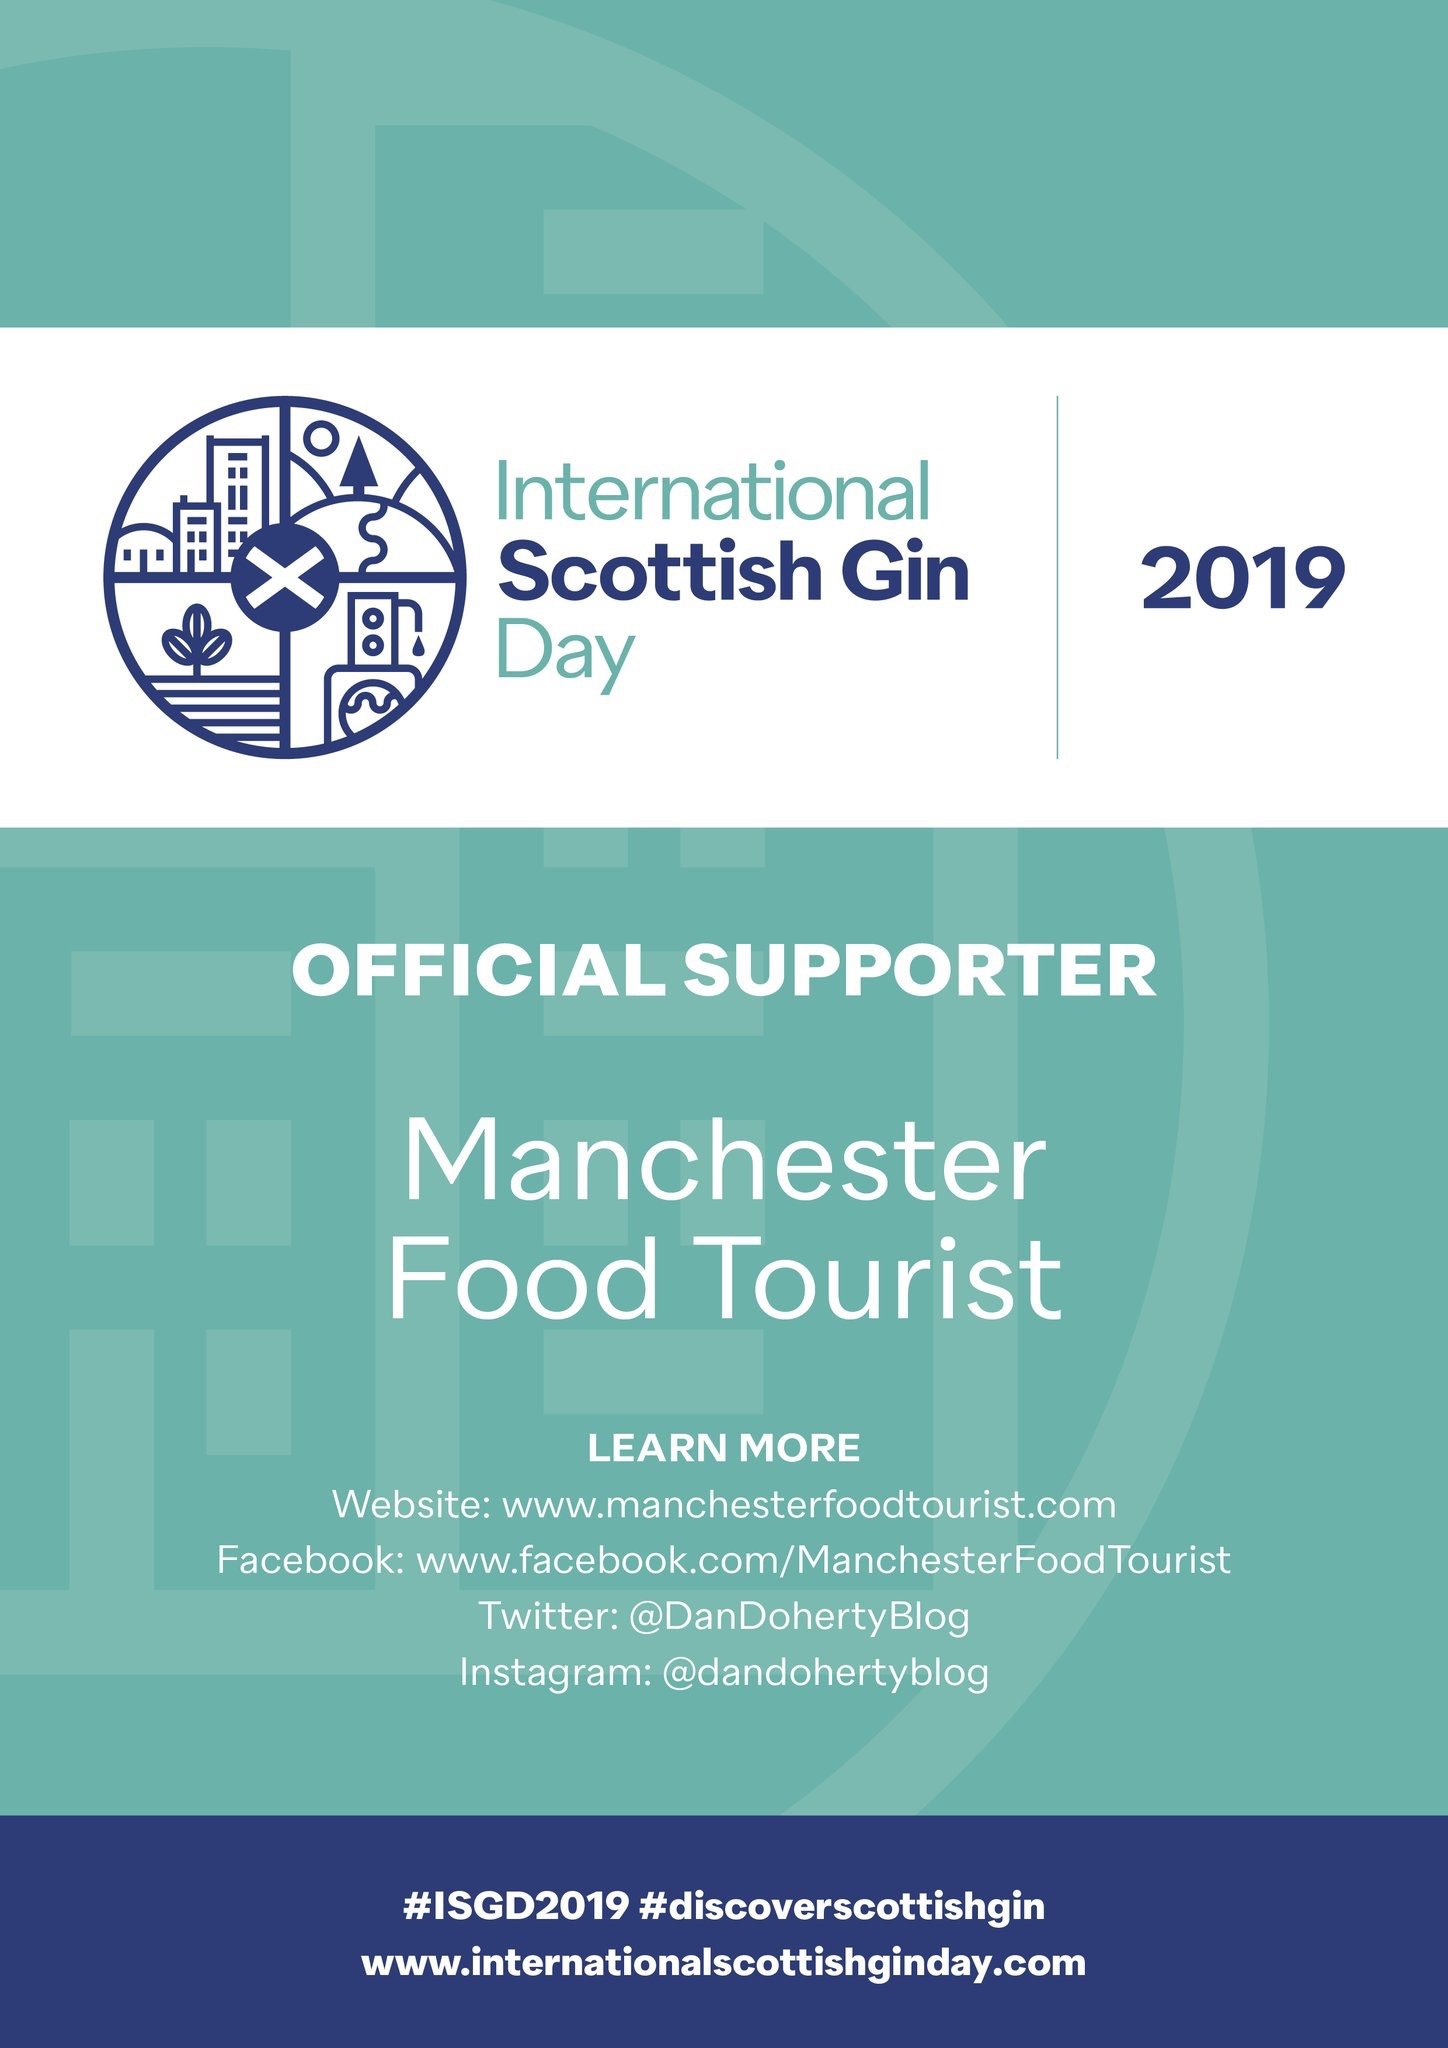 What is 'International Scottish Gin Day'